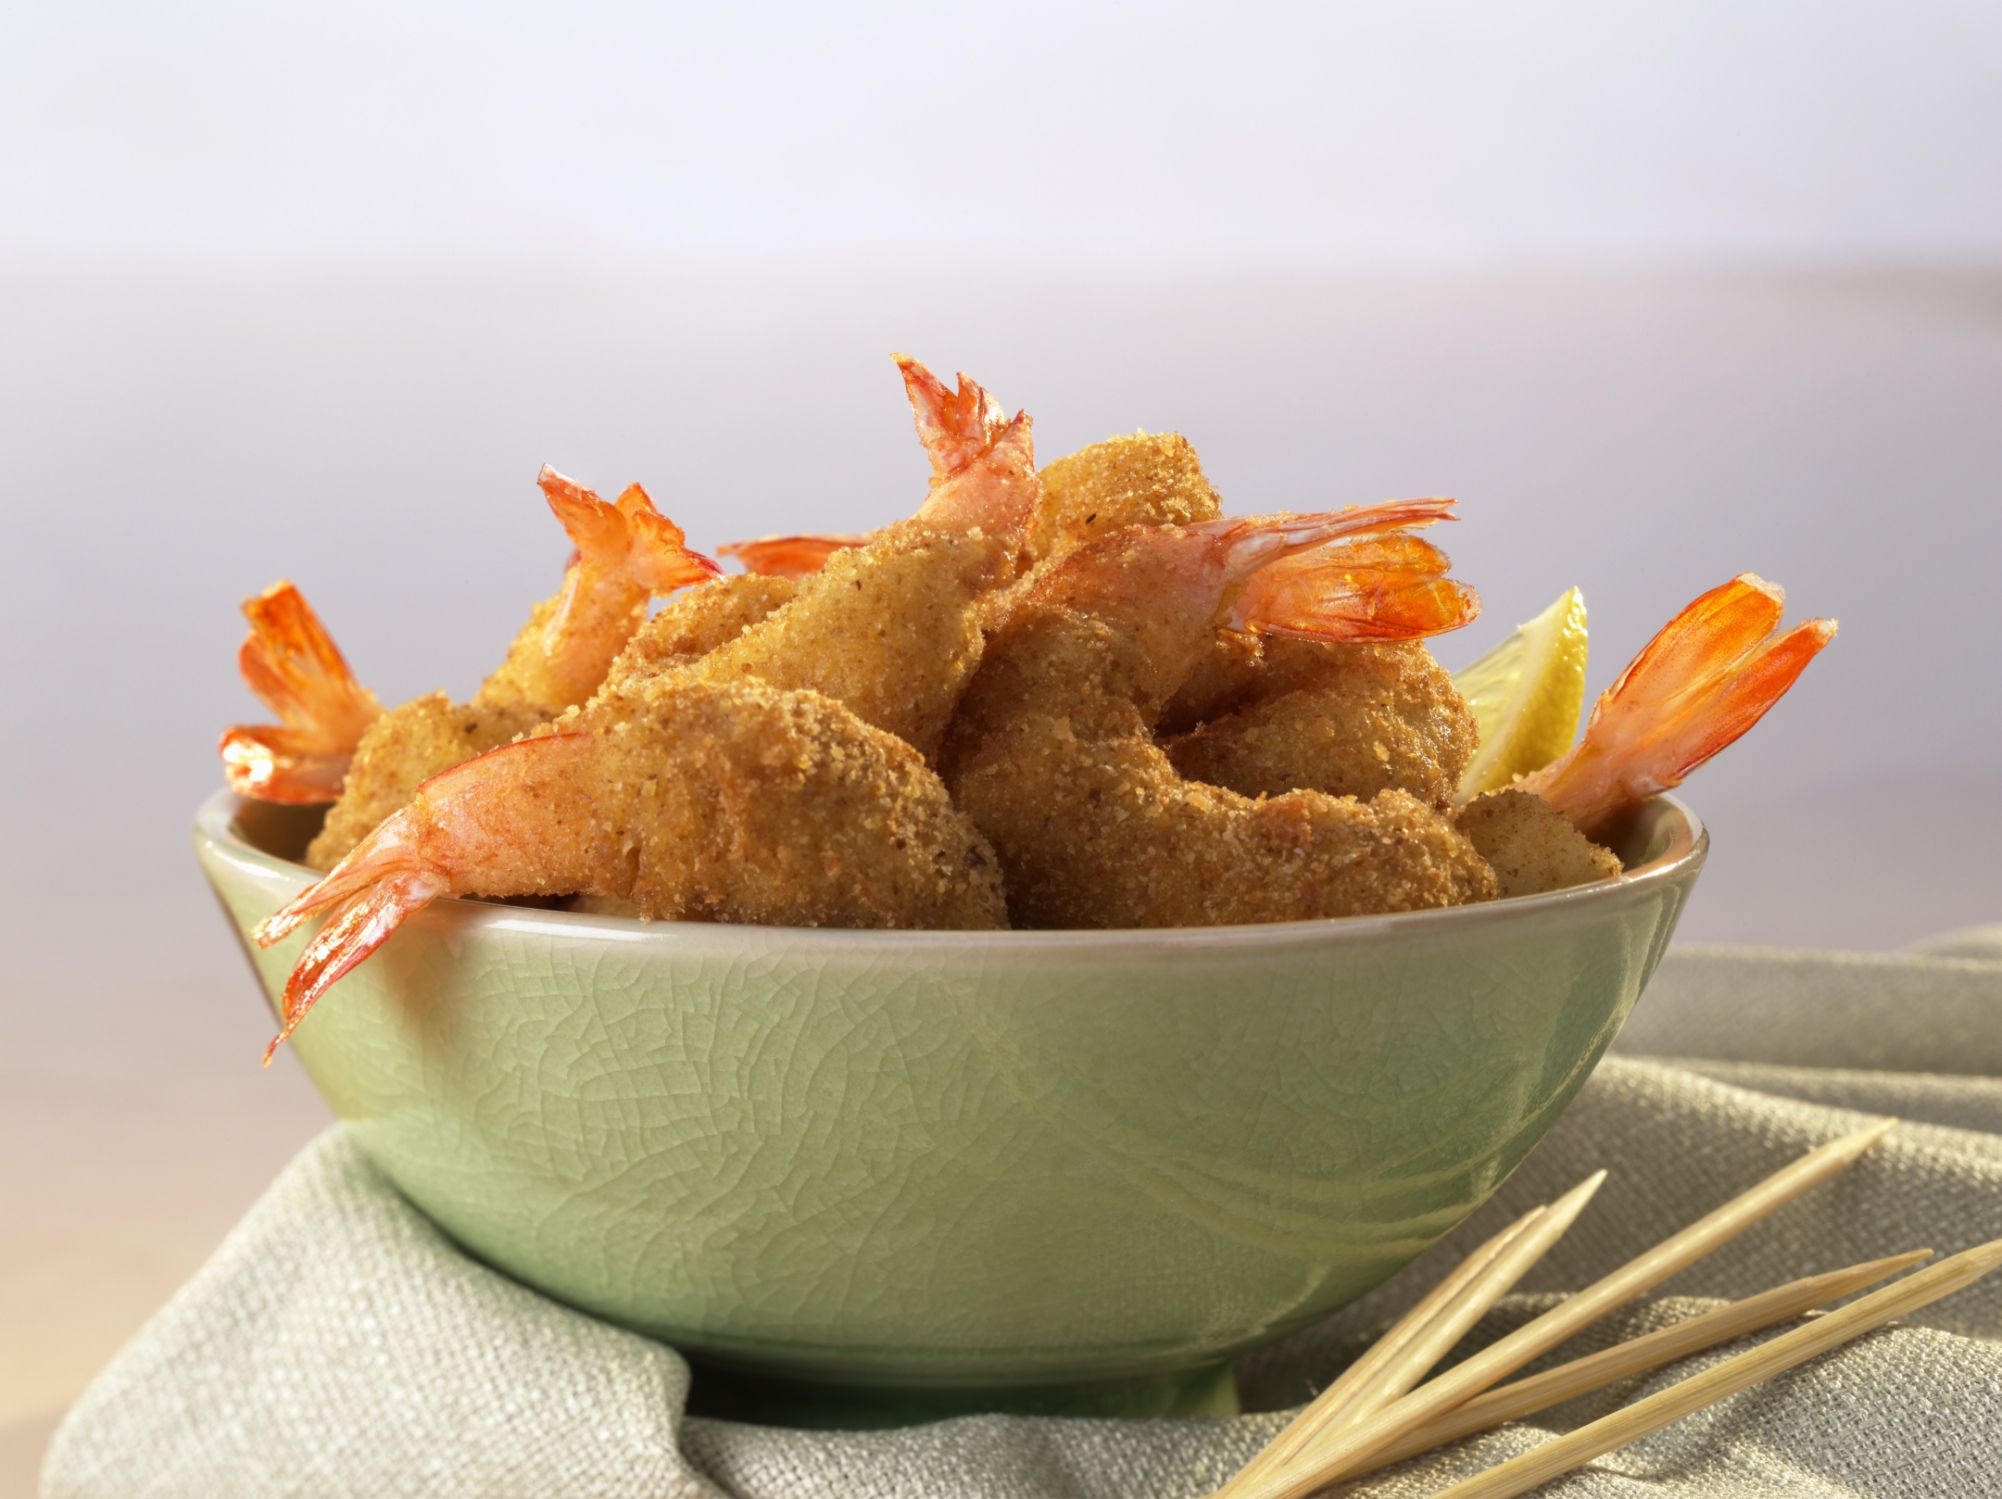 Crunchy, Juicy Fried Panko Shrimp Make A Perfect Appetizer